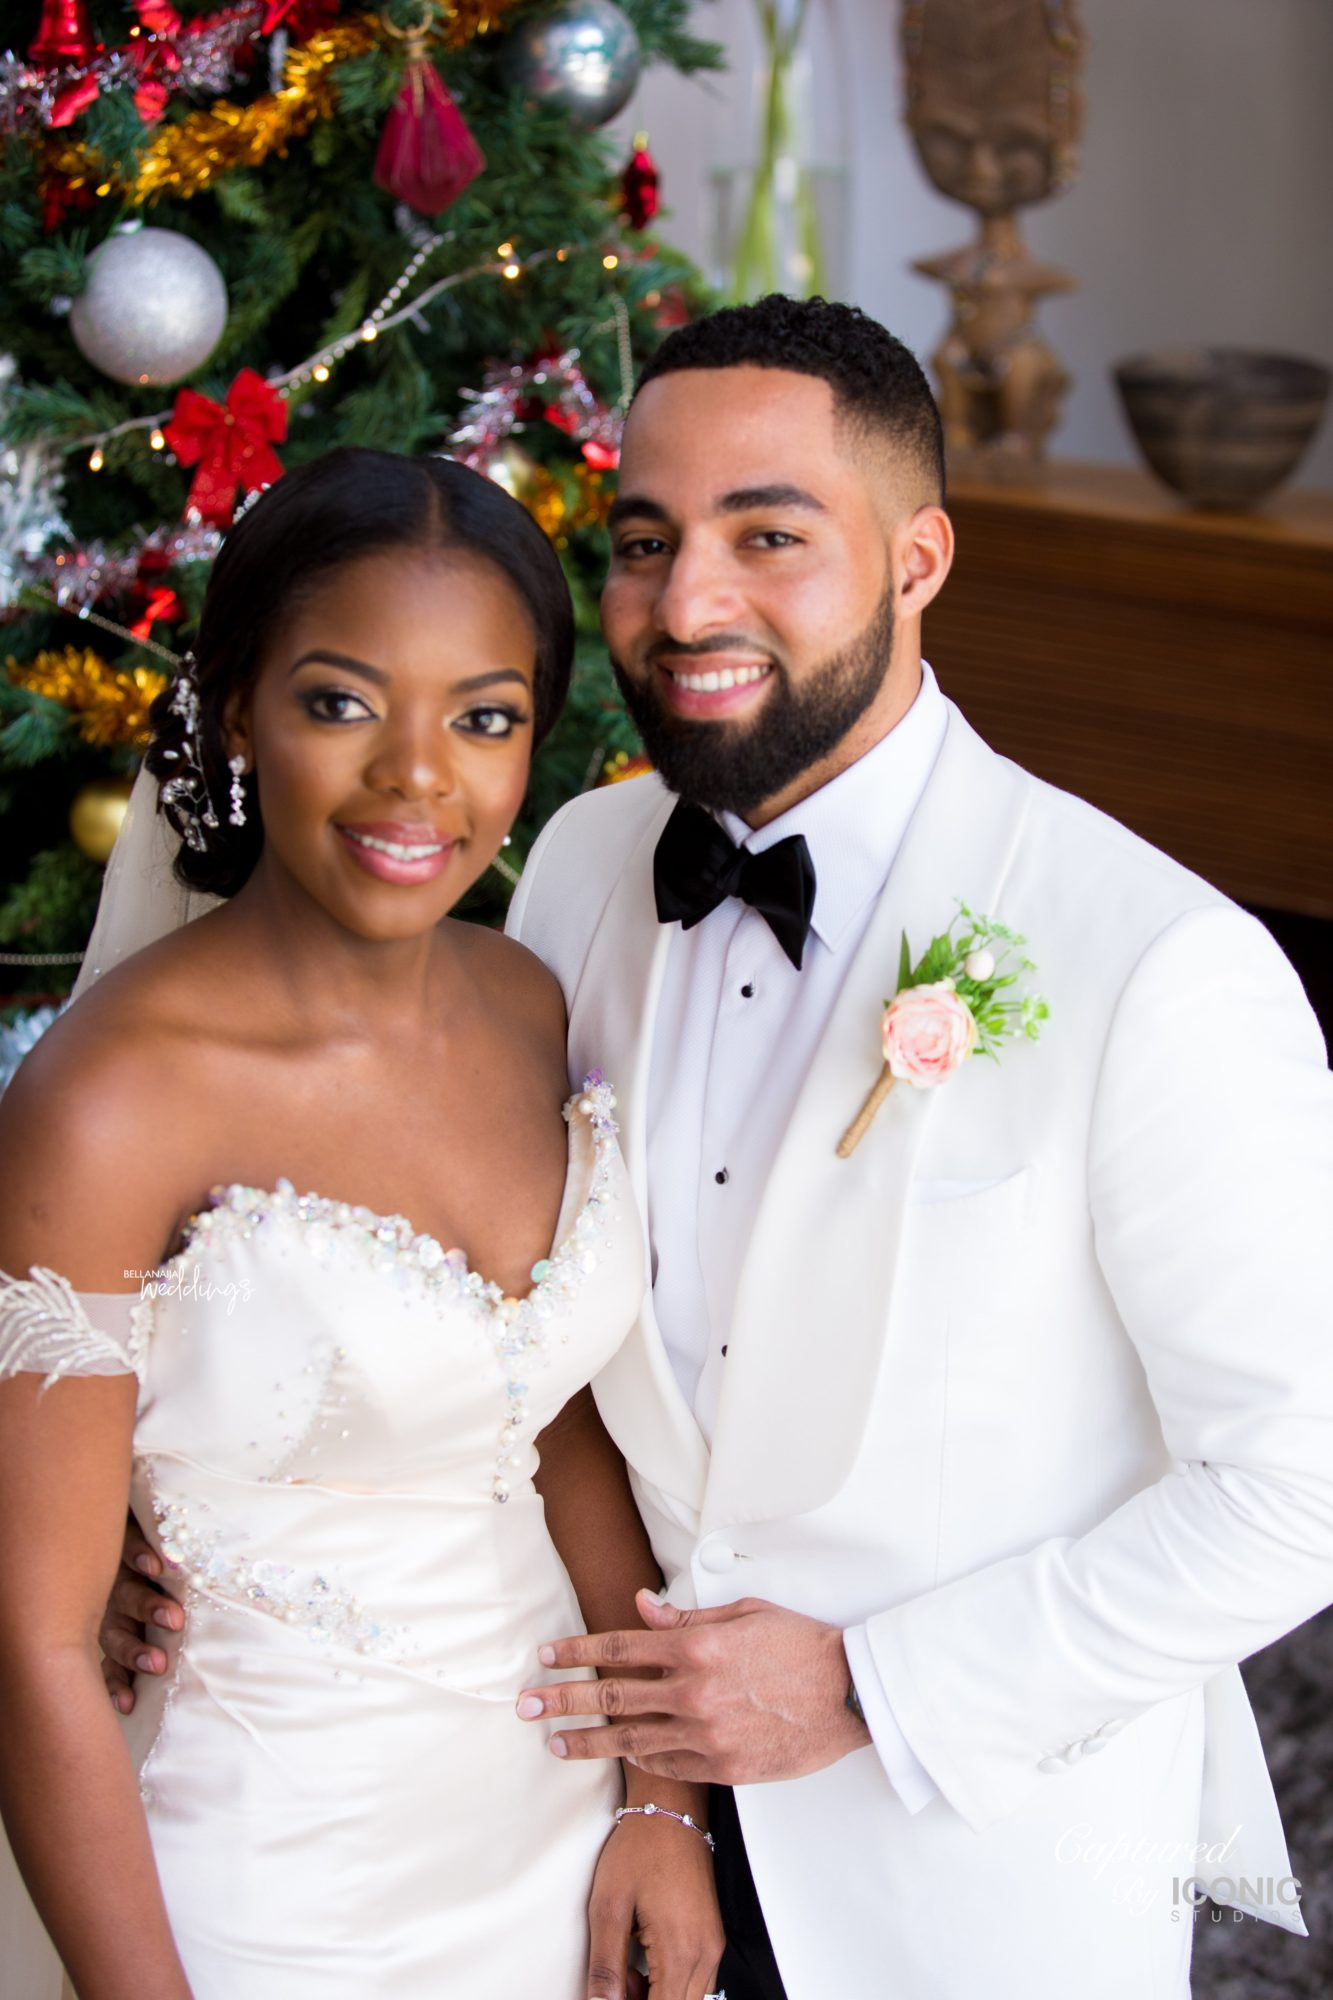 From Stealing Glances at Each Other to Forever Love! Novisi & Antonio's Ghanaian Wedding Ceremony